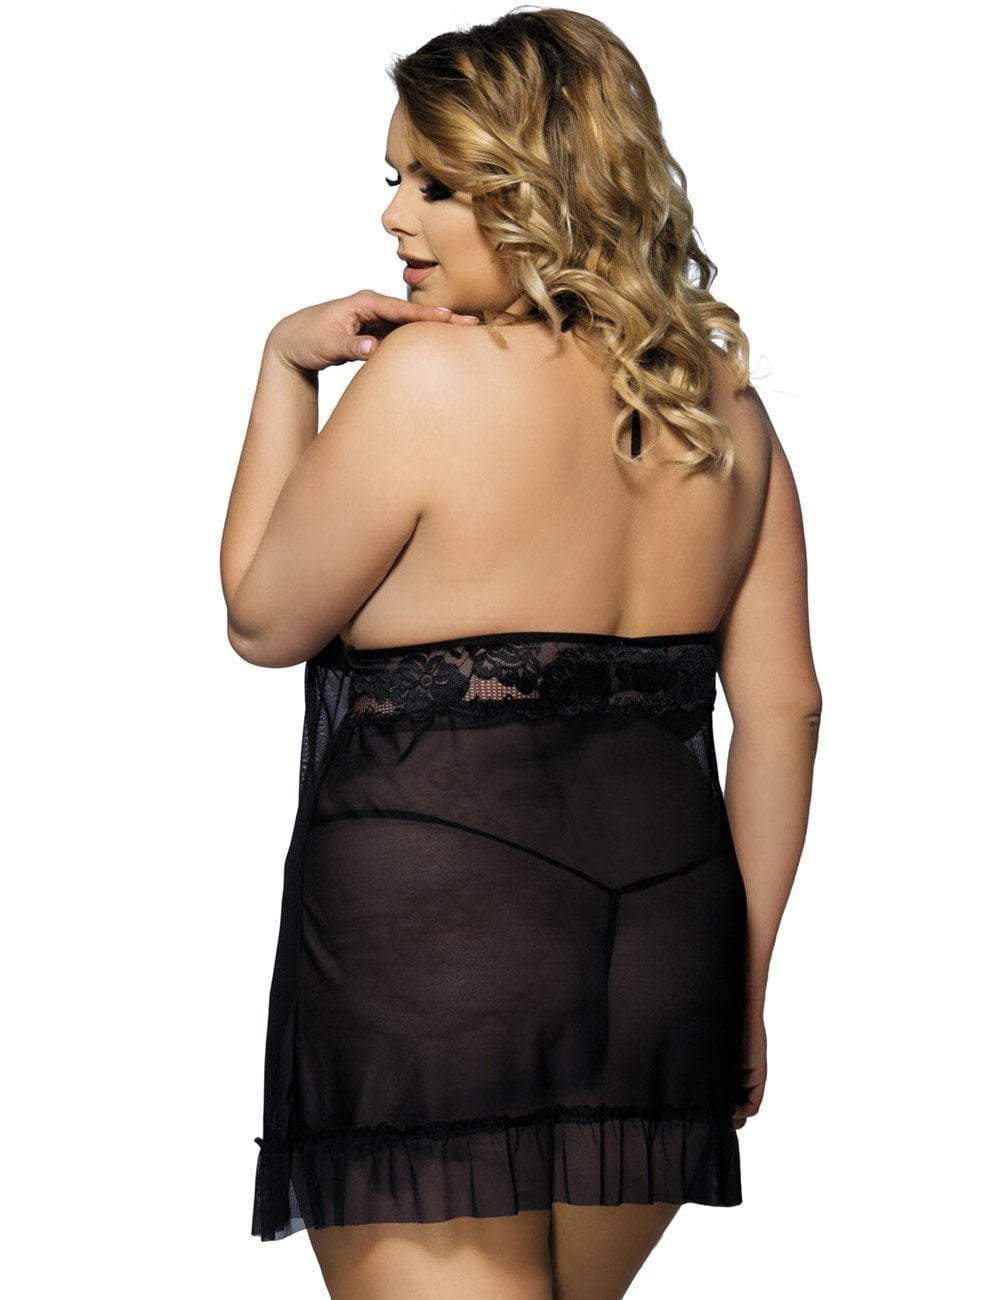 plus size Lingerie Black / 3XL / AUS 18 Aria Halter Babydoll & G-String Set - Black